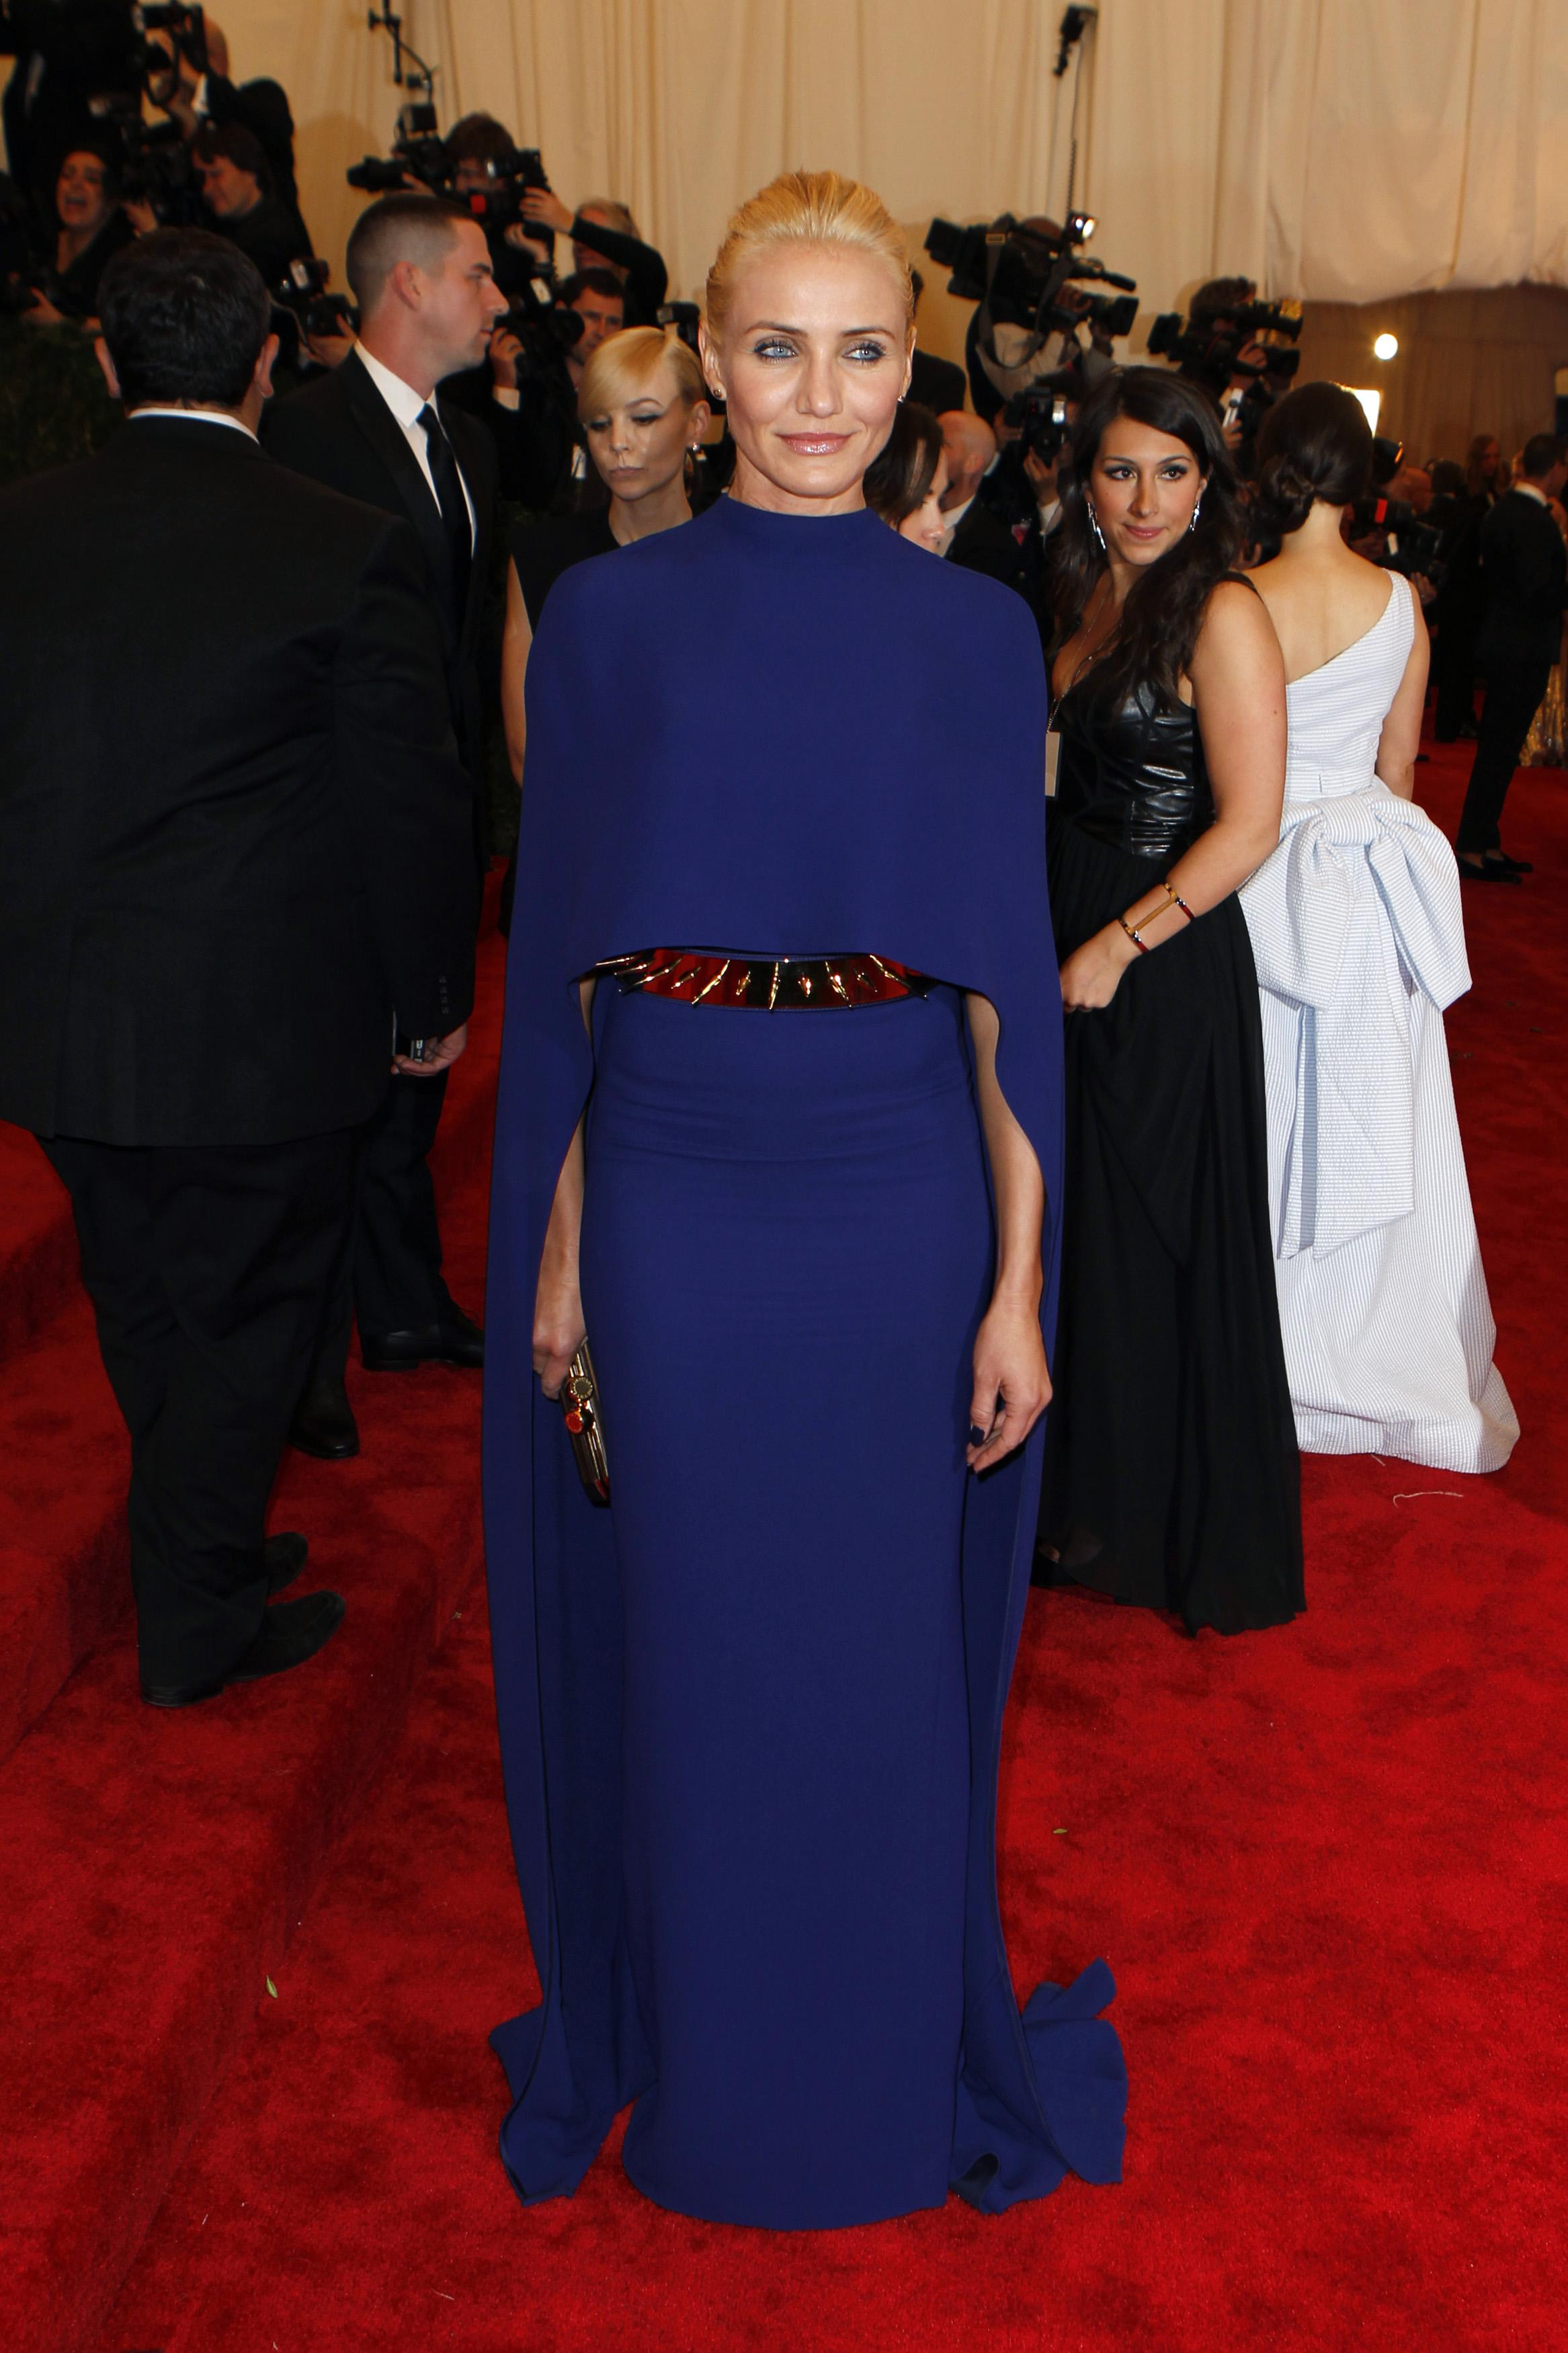 Cameron Diaz at the 2013 Met Gala